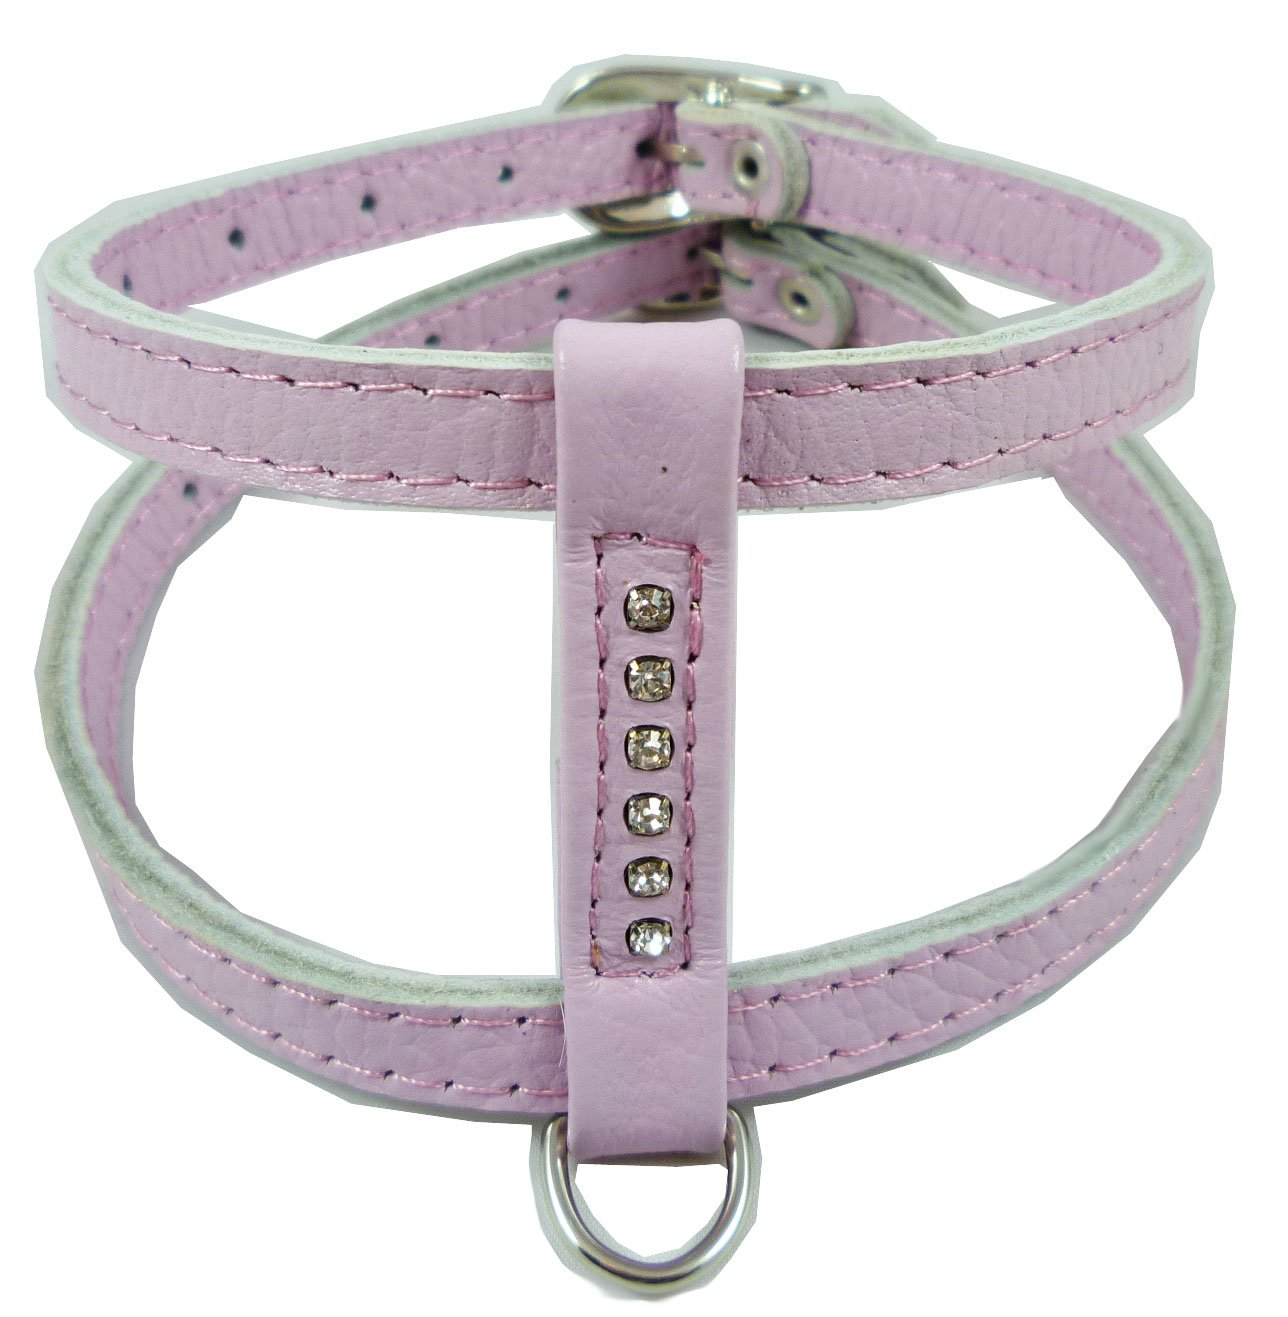 Genuine Leather Dog Harness for Toy Breeds X-small. 10 -13  Chest Circumference Rhinestones (purplec)